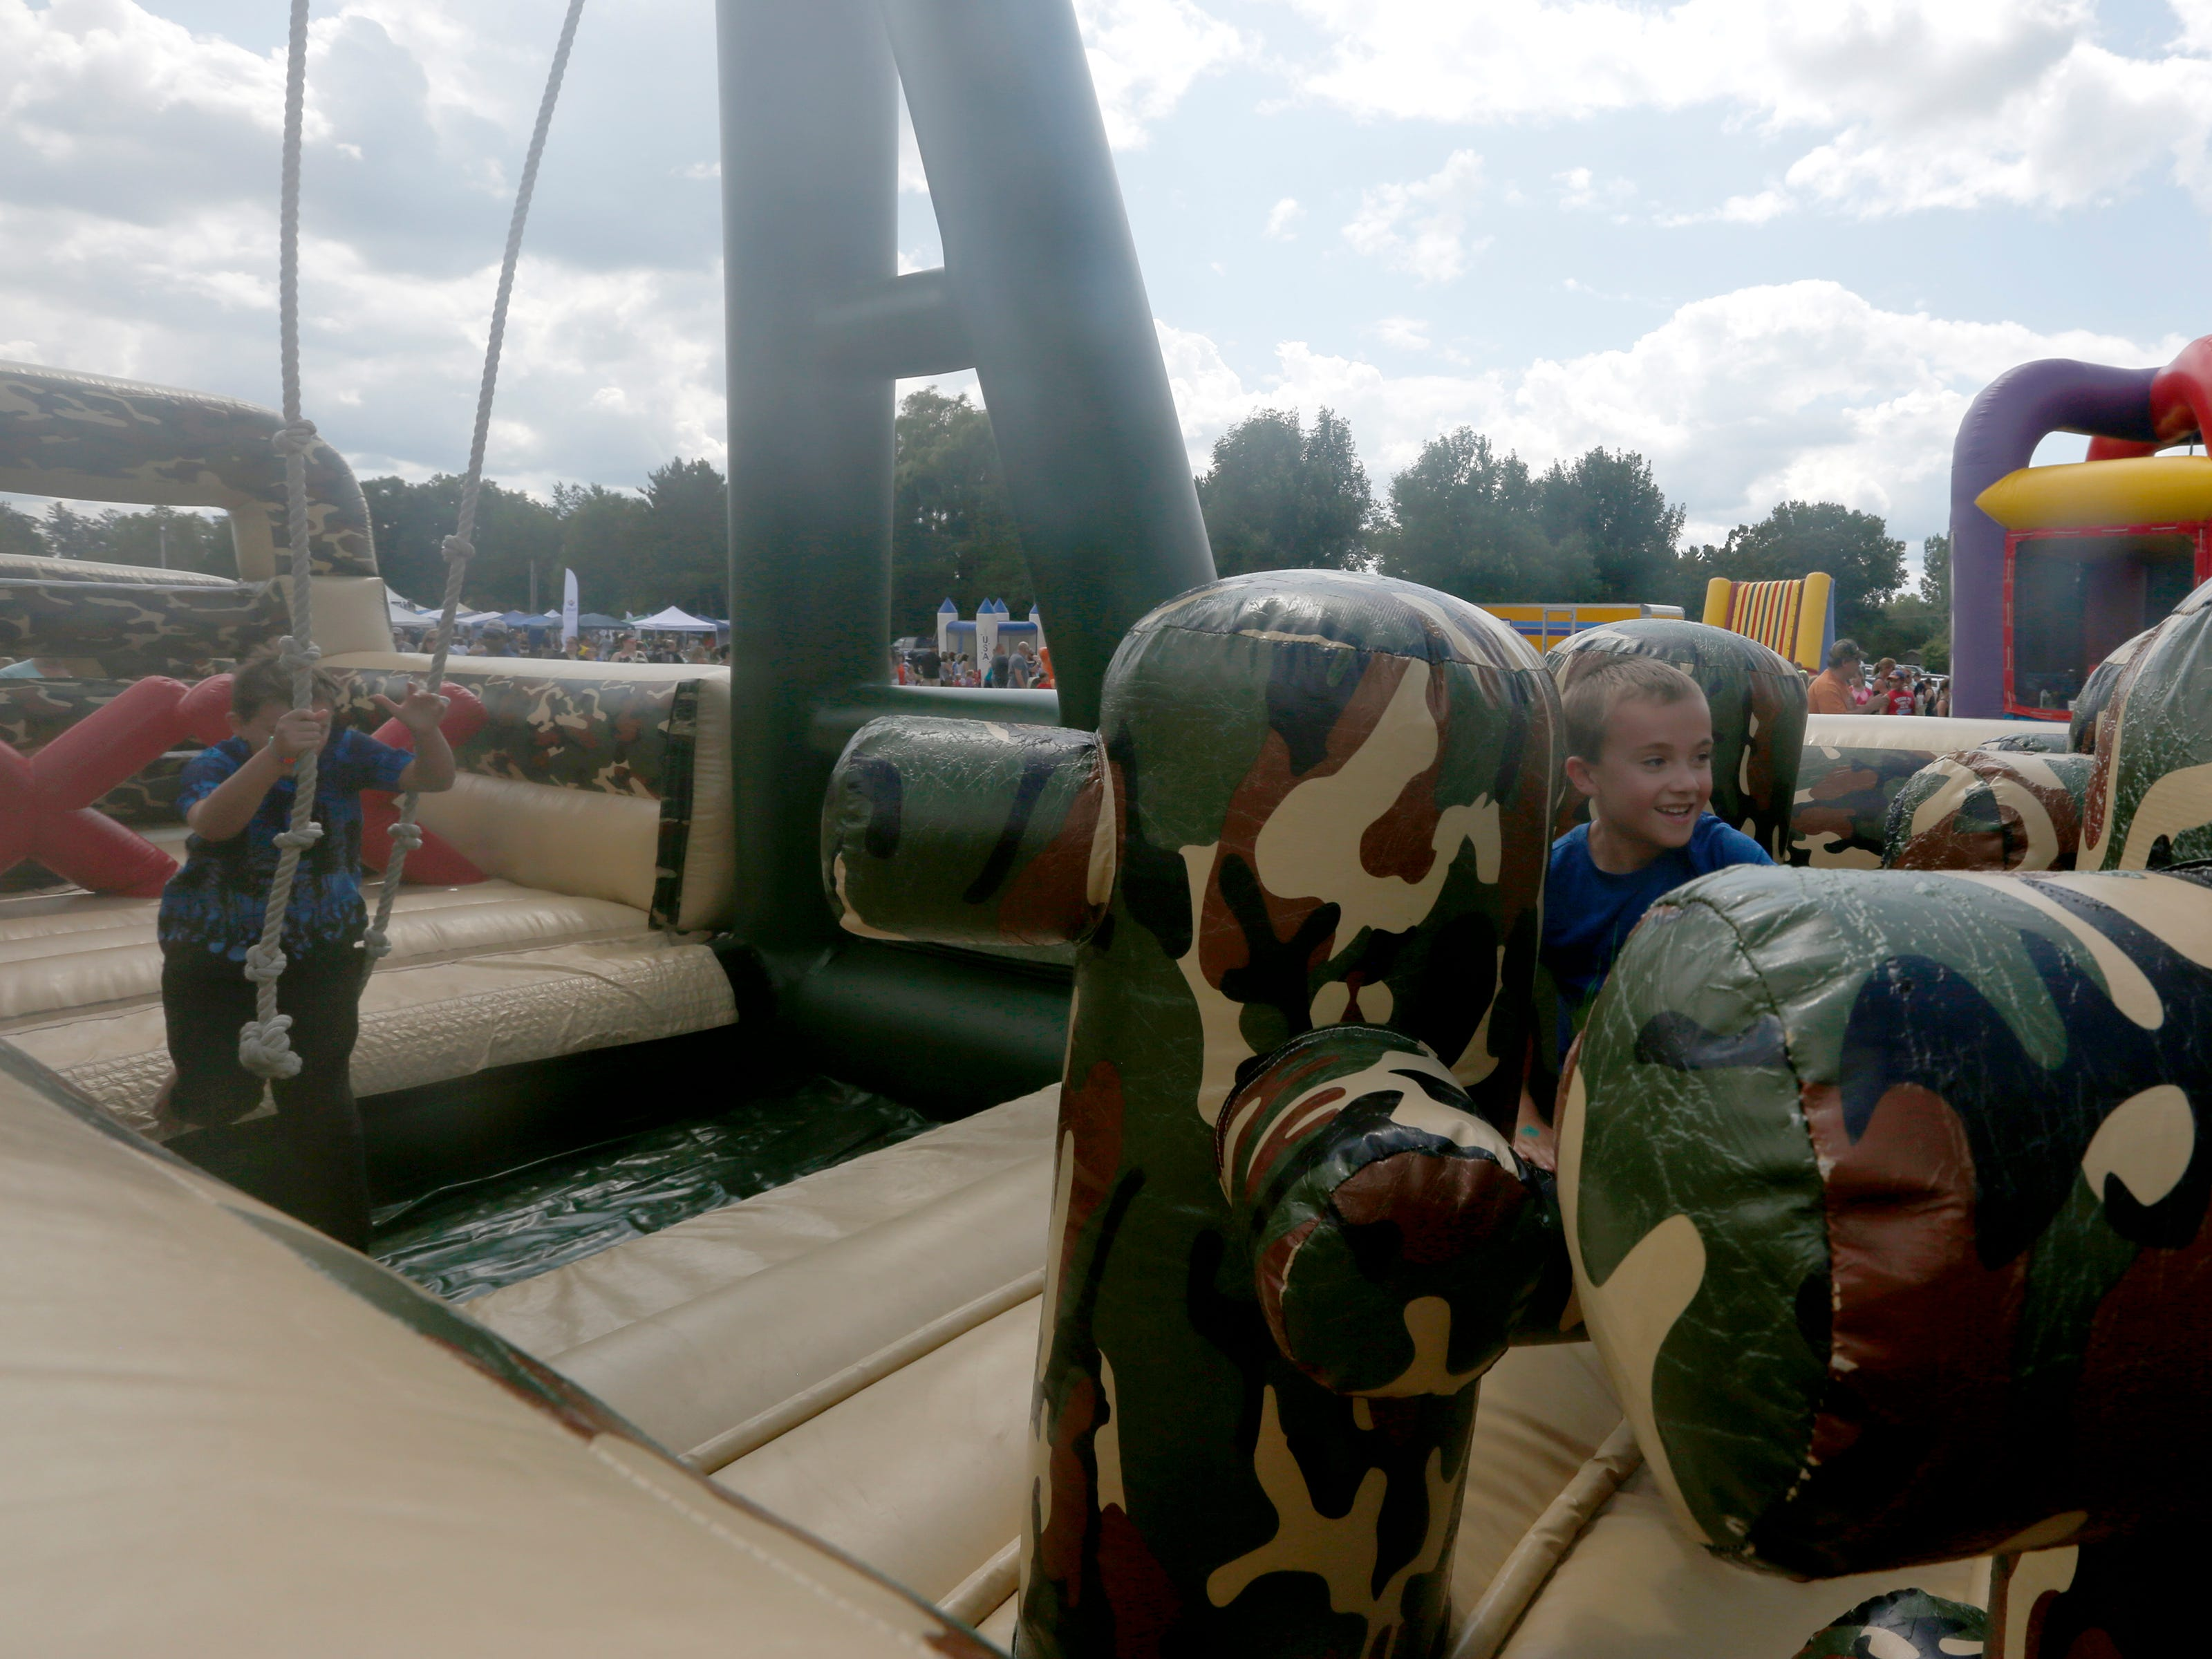 Kids play on an inflatable obstacle course during Celebrate Plover at Lake Pacawa Park in Plover, Wis., July 28, 2018.